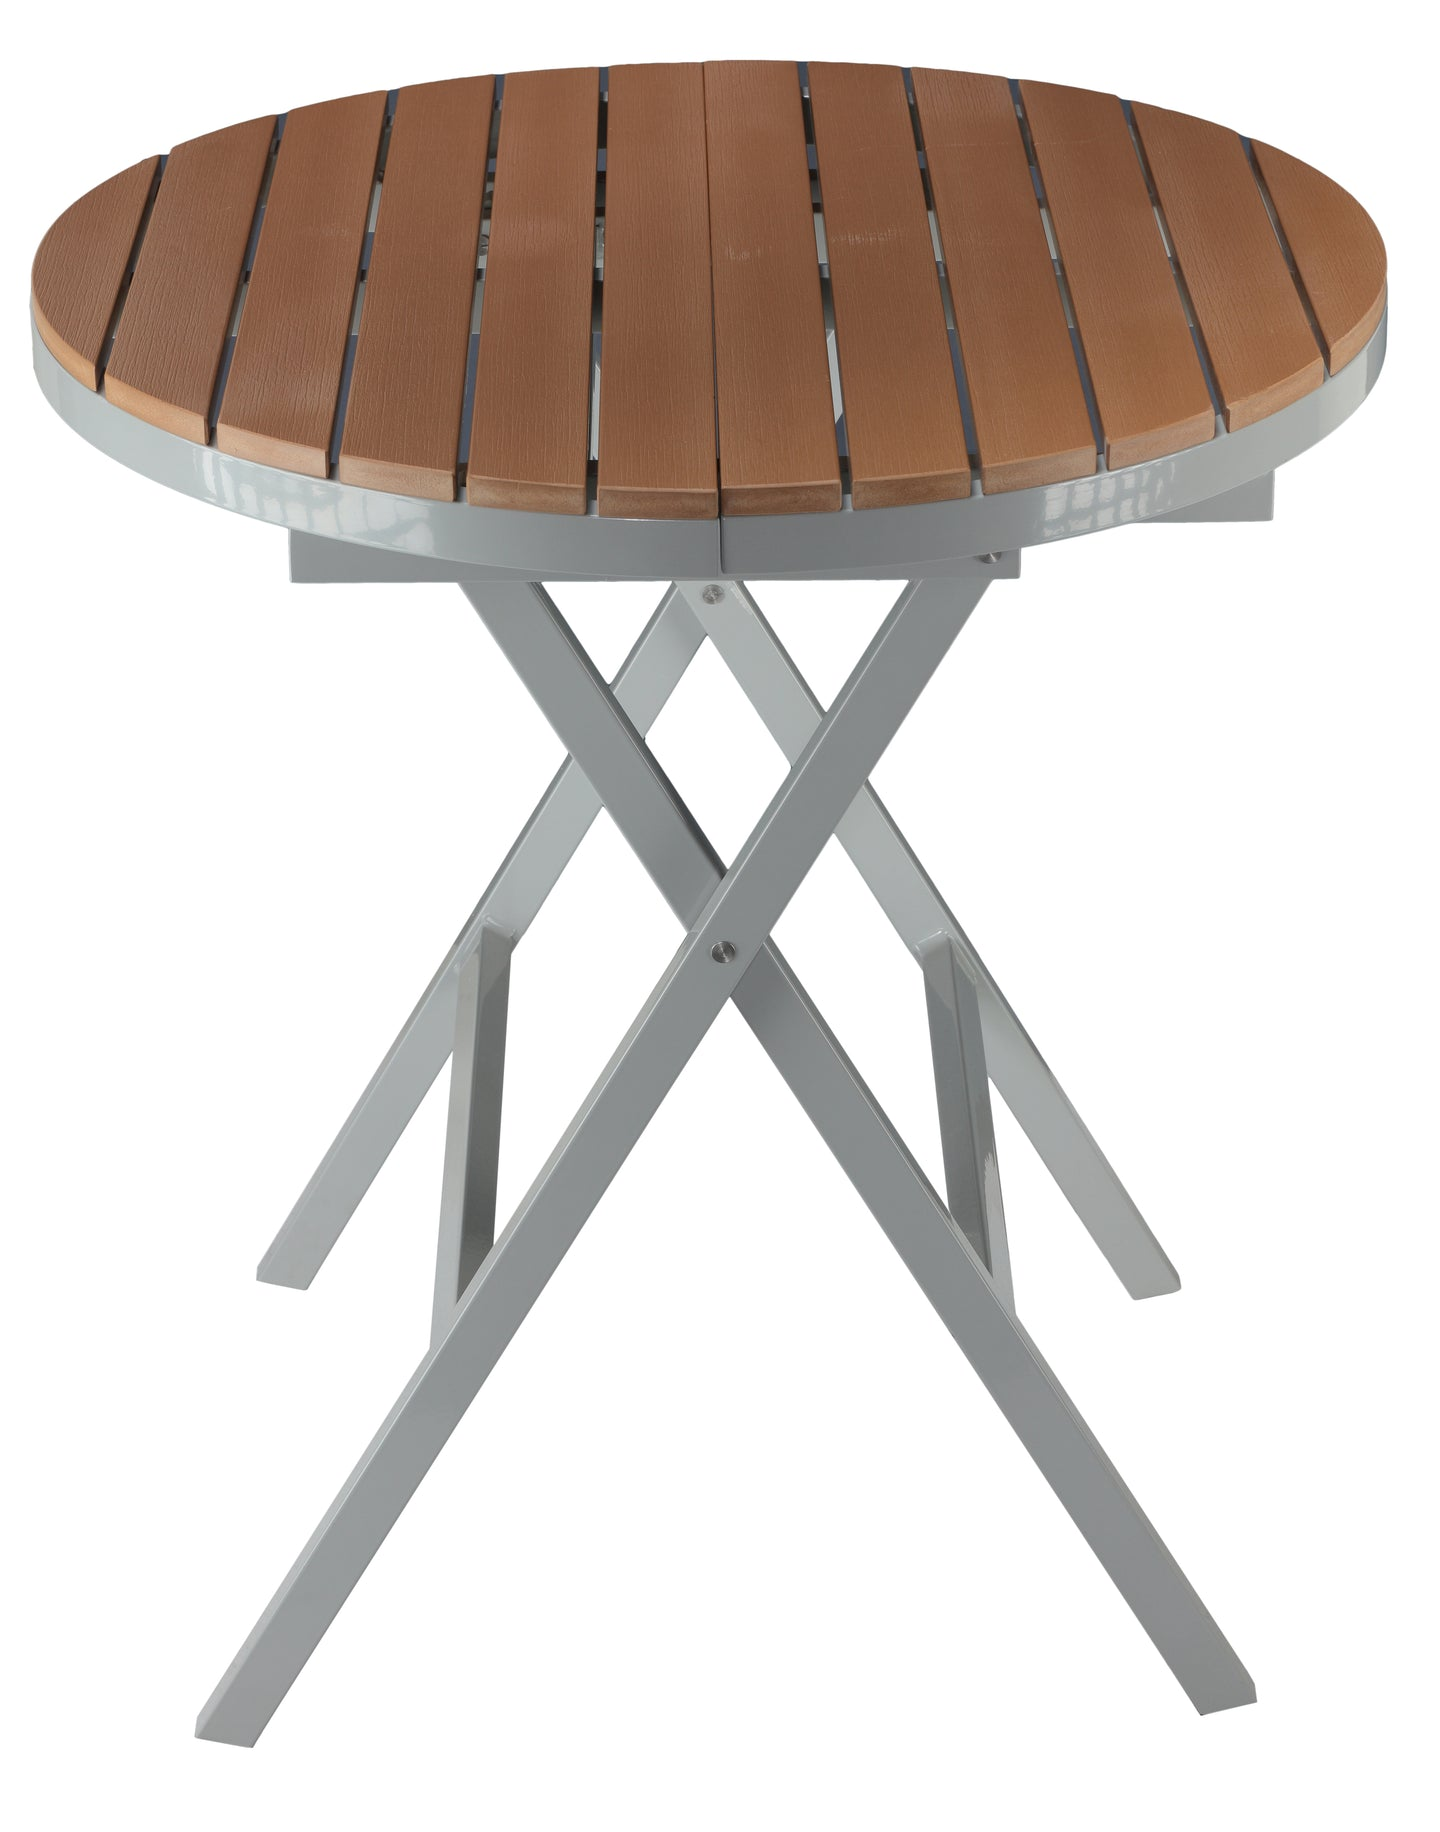 Cortesi Home Avery Aluminum Outdoor Round Folding Table in Poly Resin, Teak